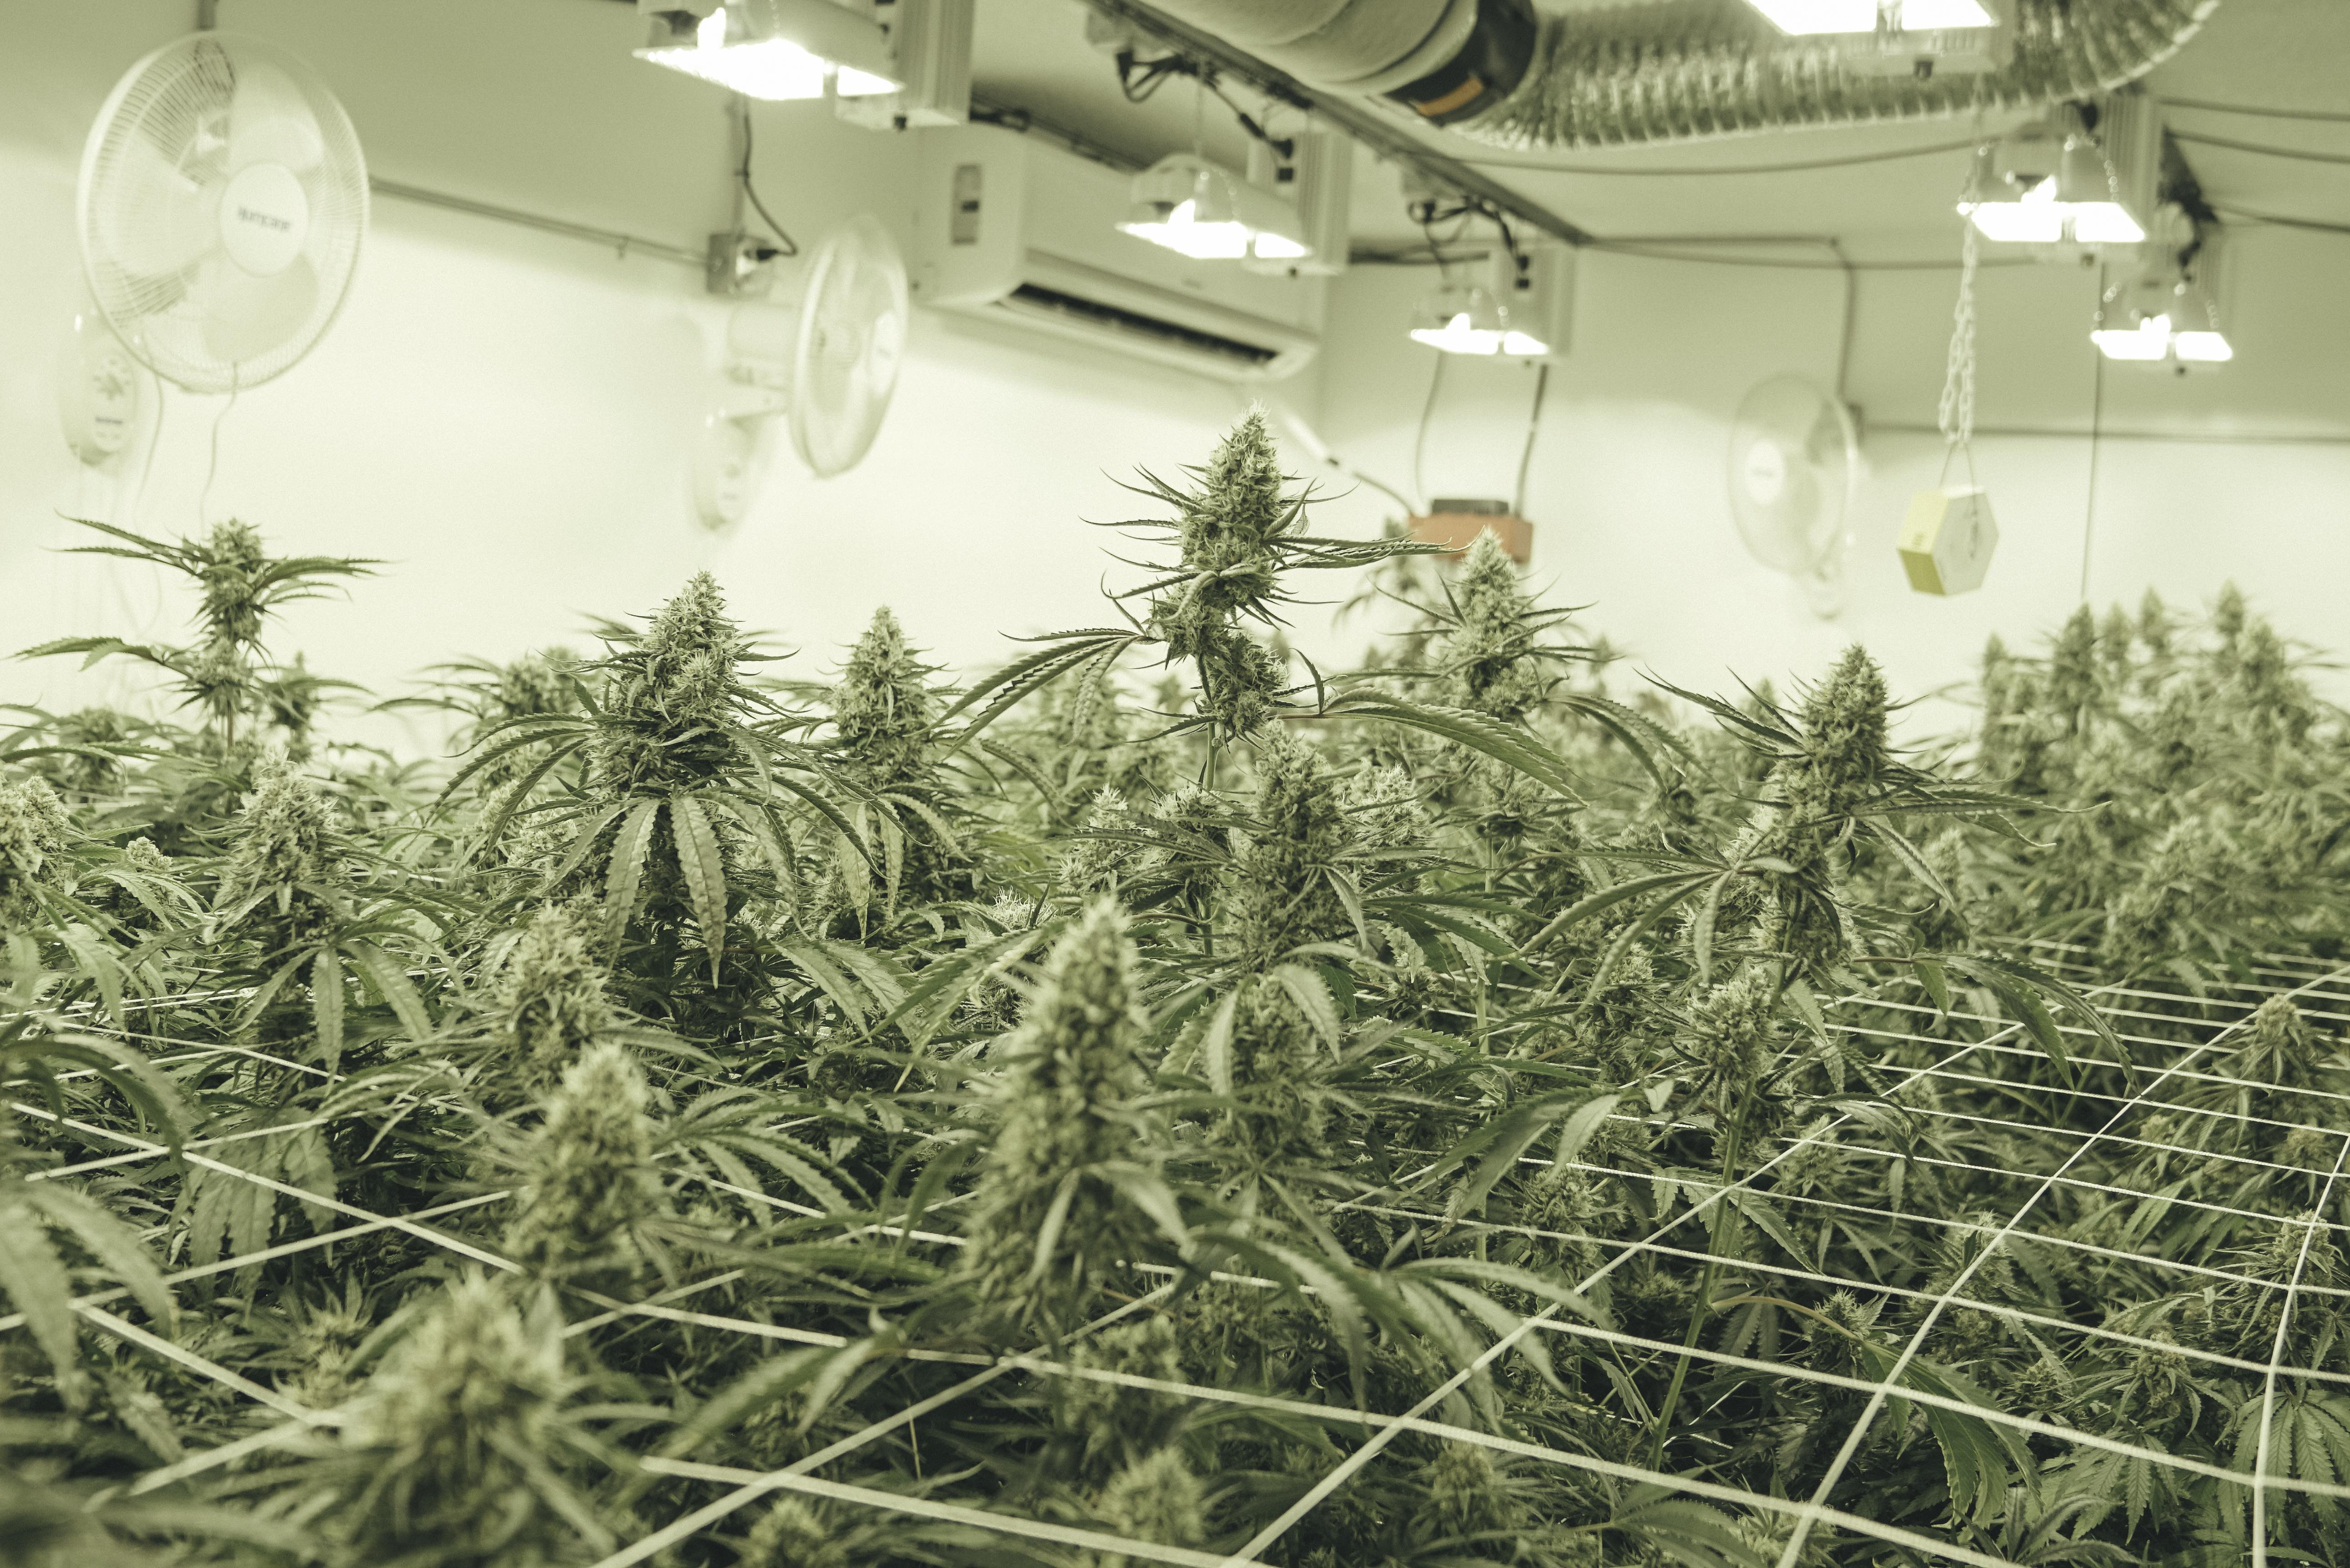 Extra fans will help remove any excess moisture in your grow room and reduce the risk for mold.